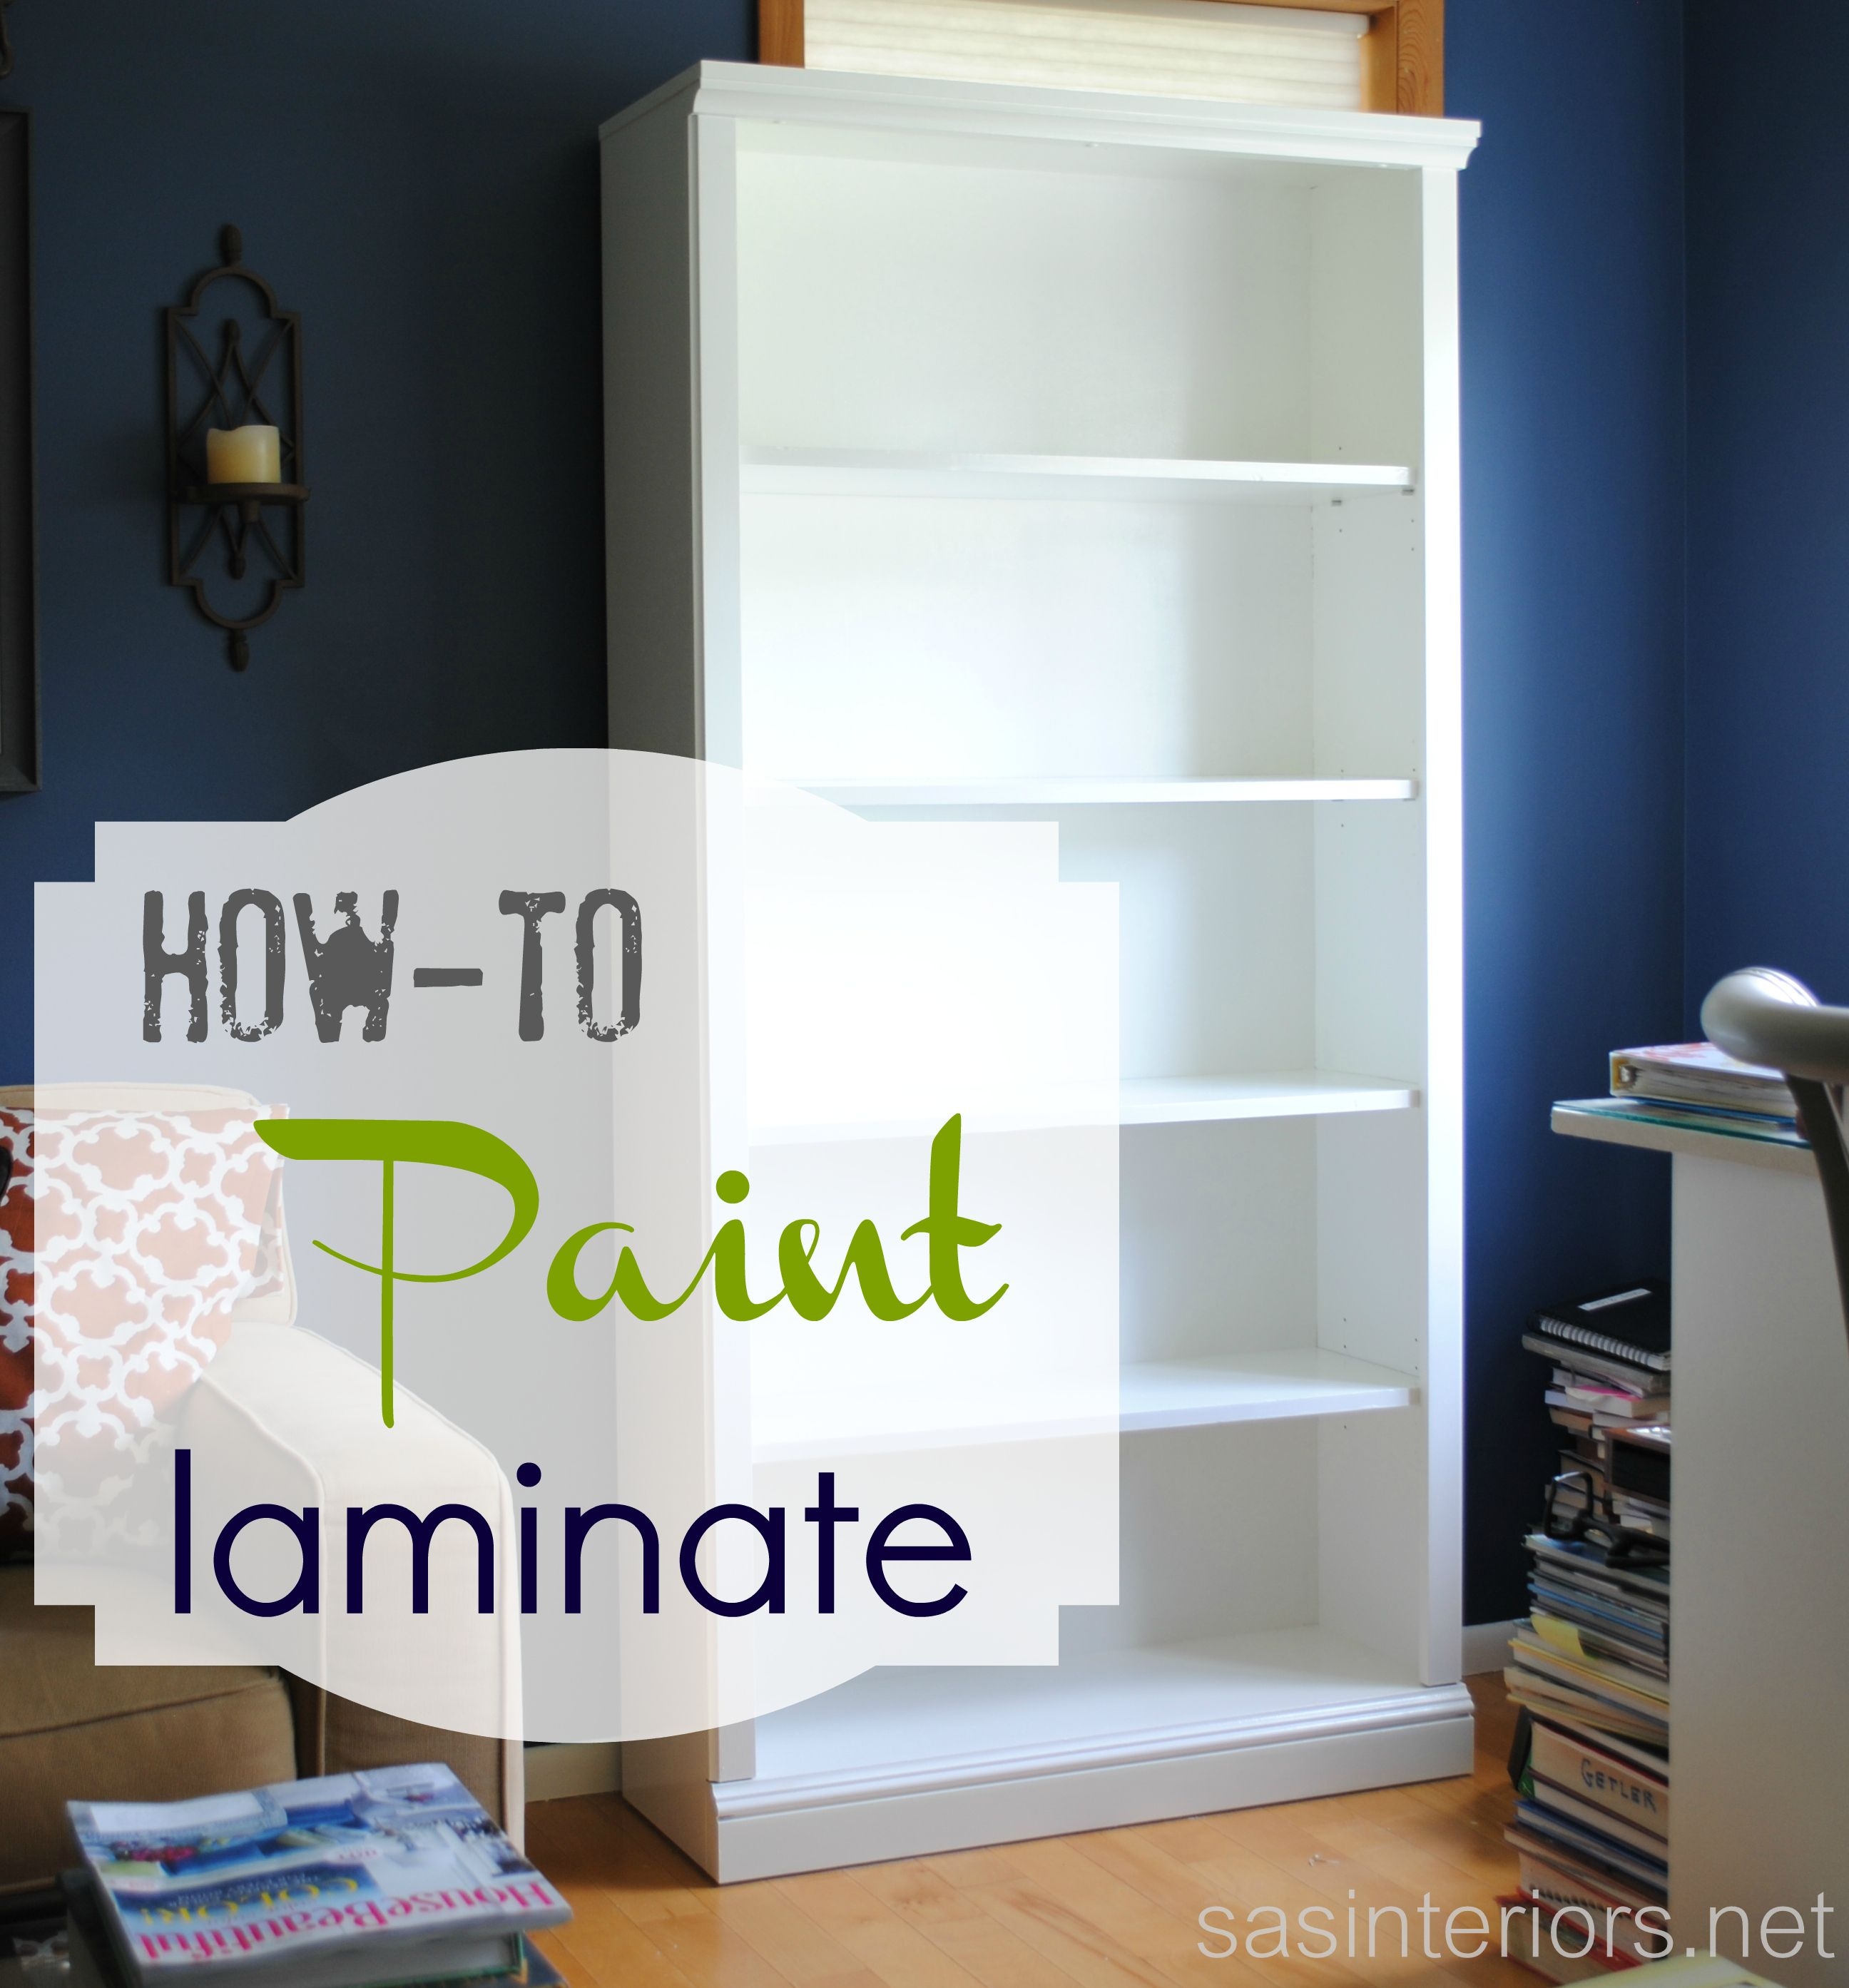 How To Paint Laminate Furniture Painting Laminate Furniture Laminate Furniture Painting Laminate